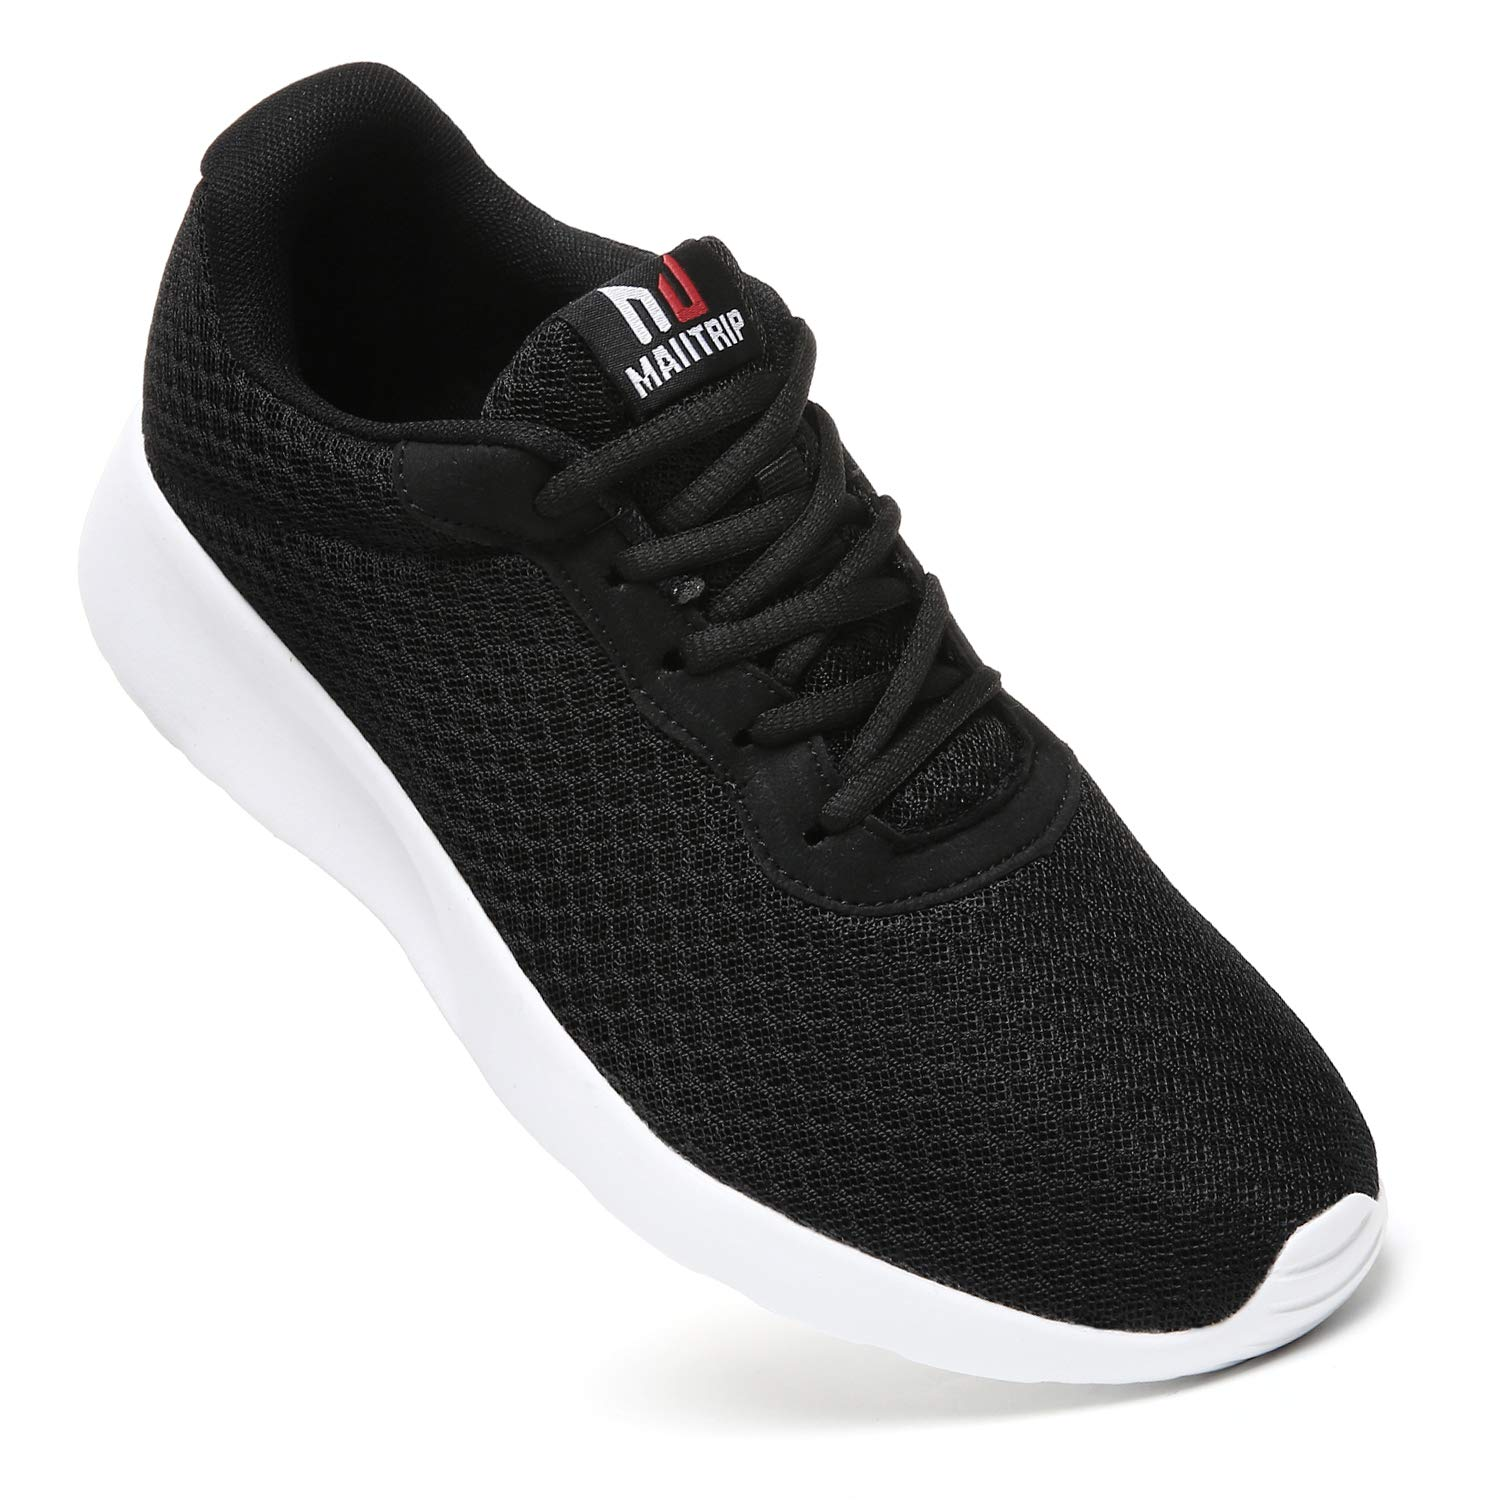 MAITRIP Mens Gym Shoes,Athletic Running Shoes,Lightweight Breathable Mesh Casual Tennis Sports Workout Walking Sneakers,Black/White,Size 8